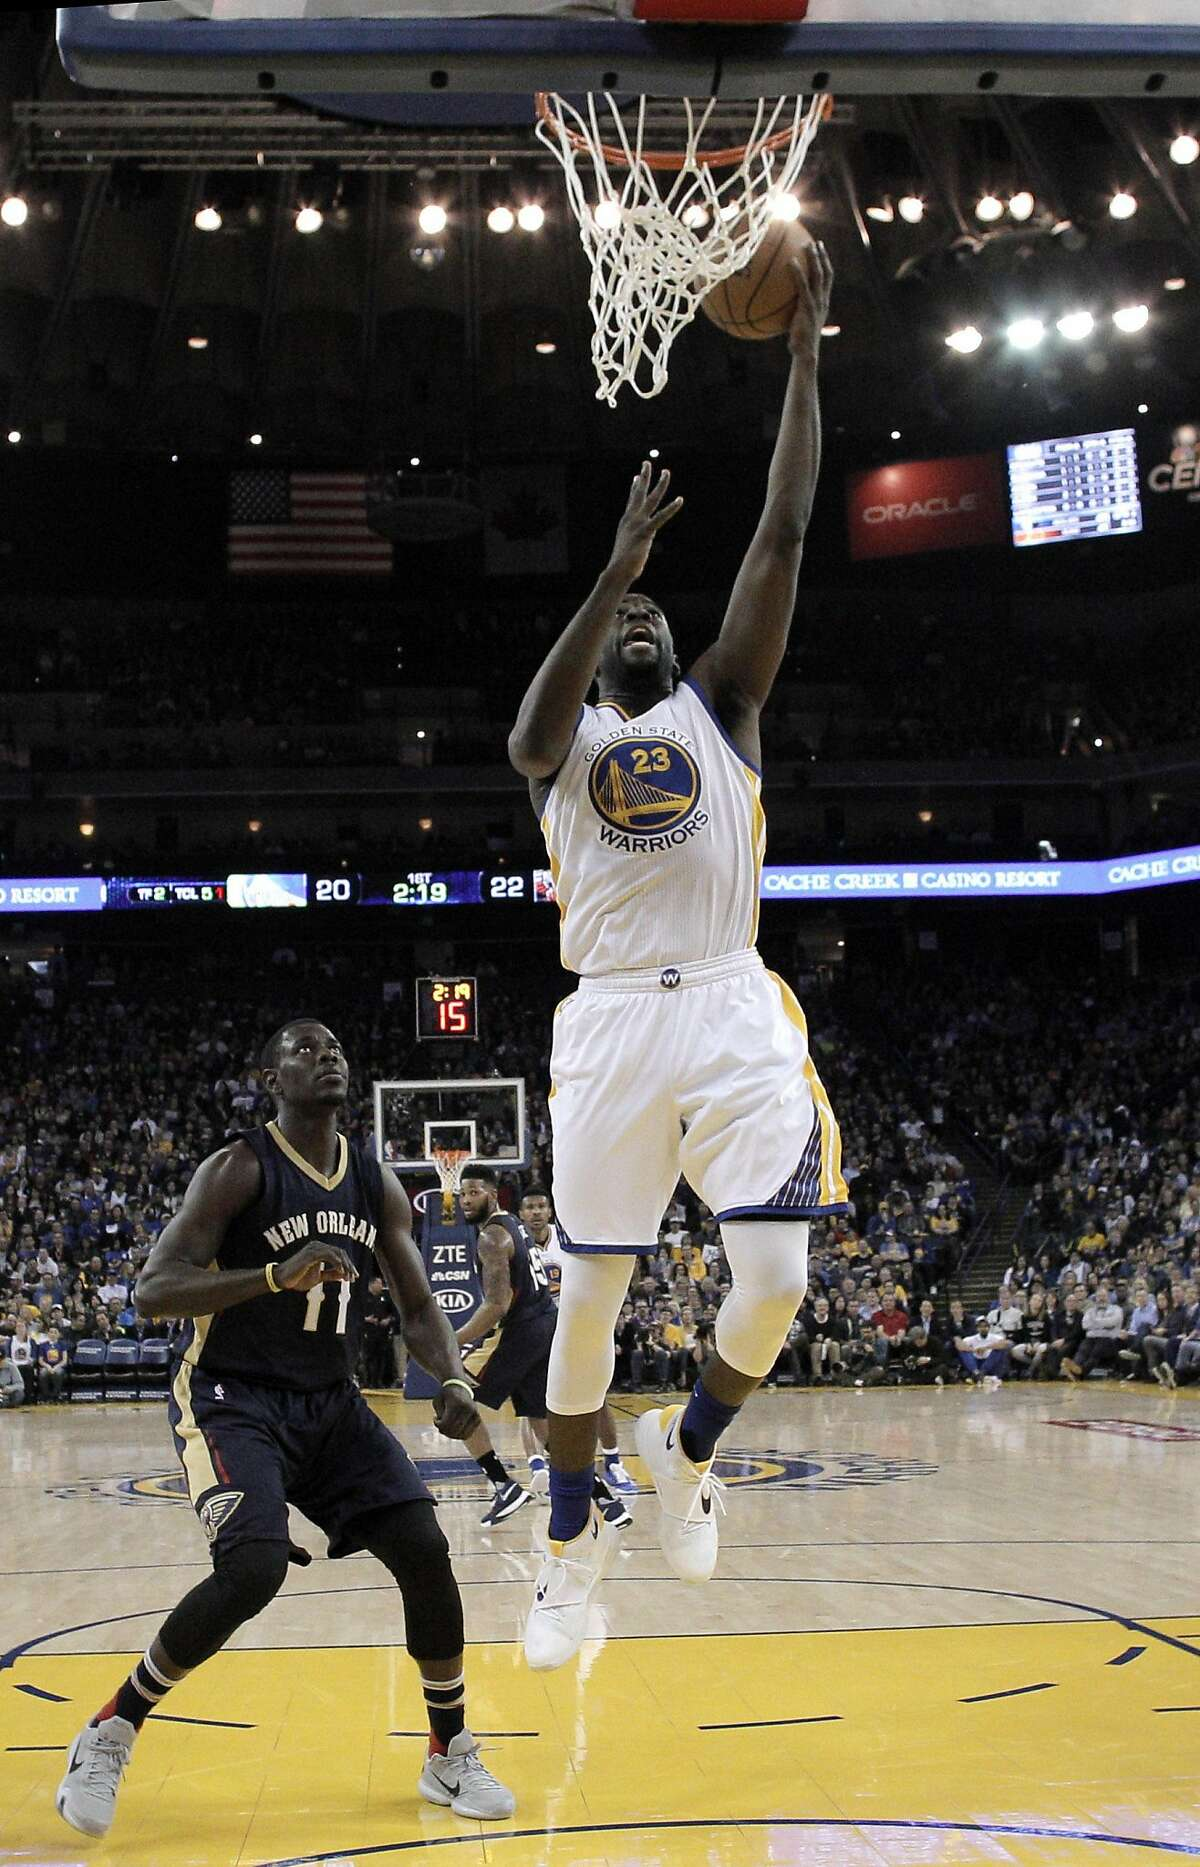 Draymond Green (23) puts in a layup in the first half as the Golden State Warriors played the New Orleans Pelicans at Oracle Arena in Oakland, Calif., on Monday, March 14, 2016.